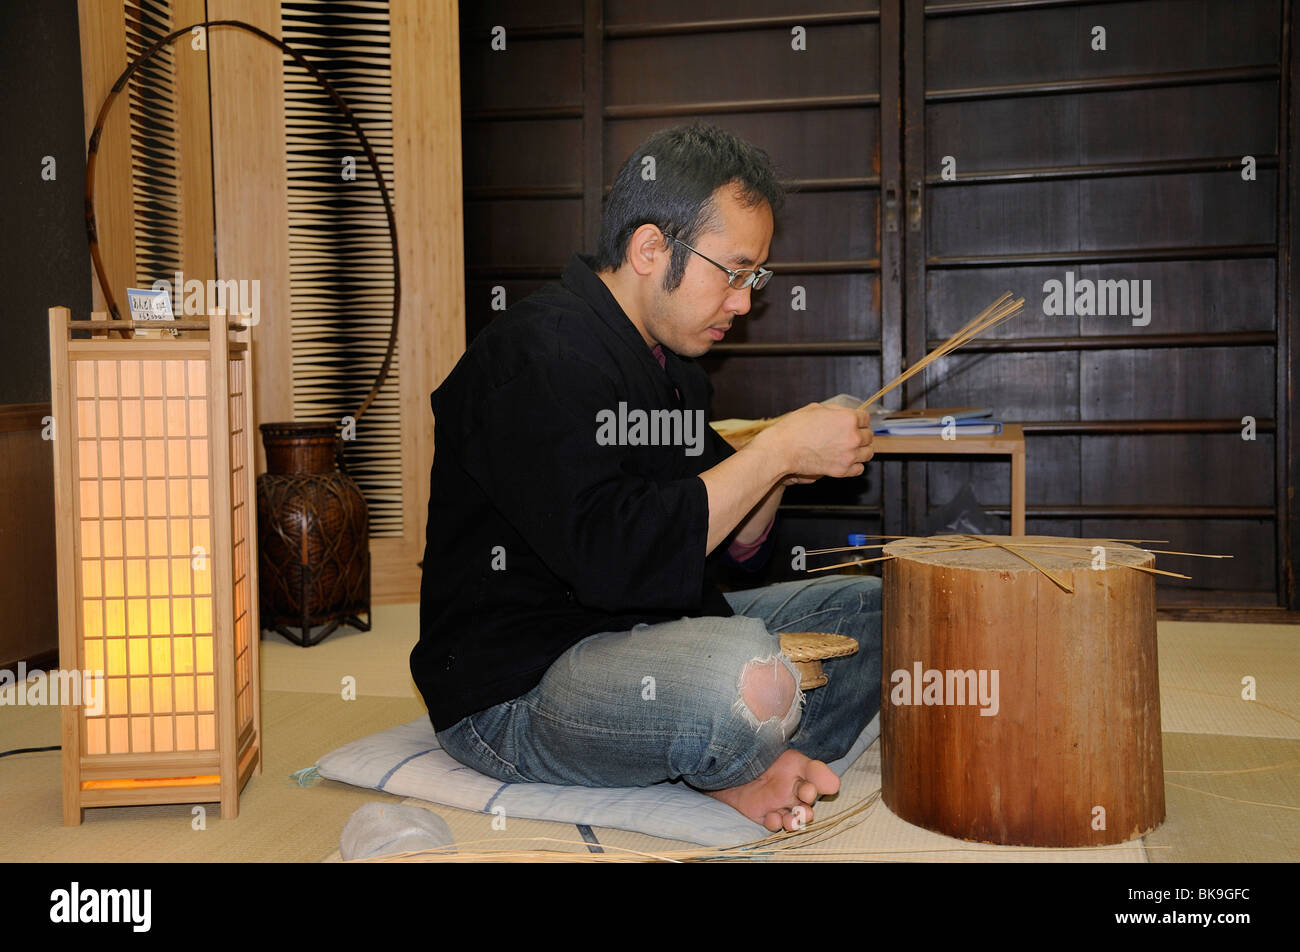 Manufactory for bamboo items and bamboo lamps, Kyoto, Japan, Asia - Stock Image